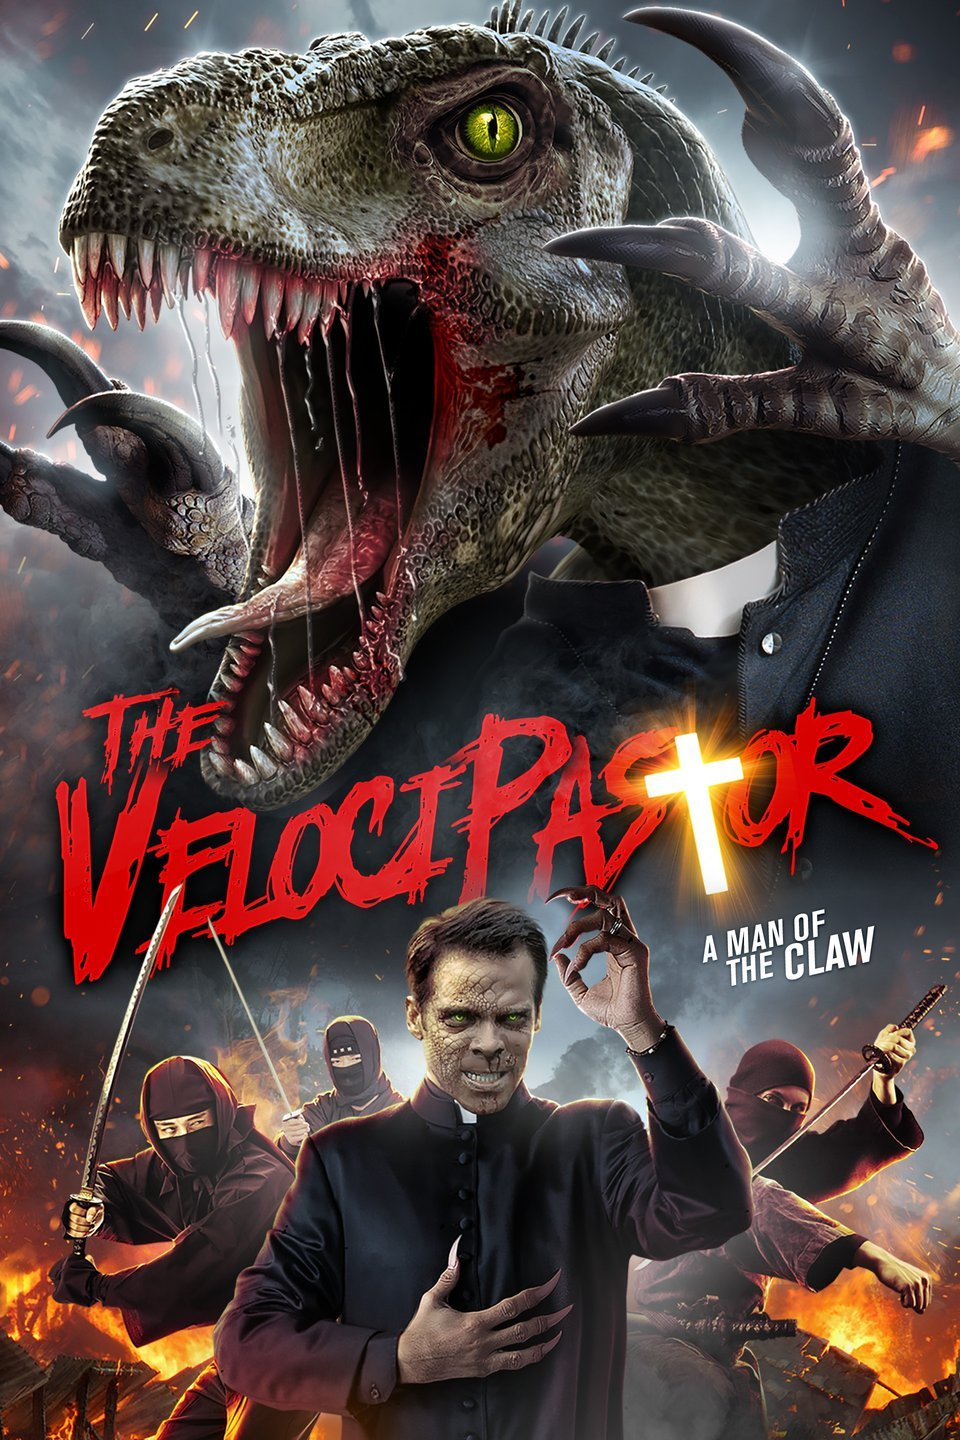 After losing his parents, a priest travels to China, where he inherits a mysterious ability that allows him to turn into a dinosaur. Although he is horrified by the new power, a hooker convinces him to use it to fight crime.